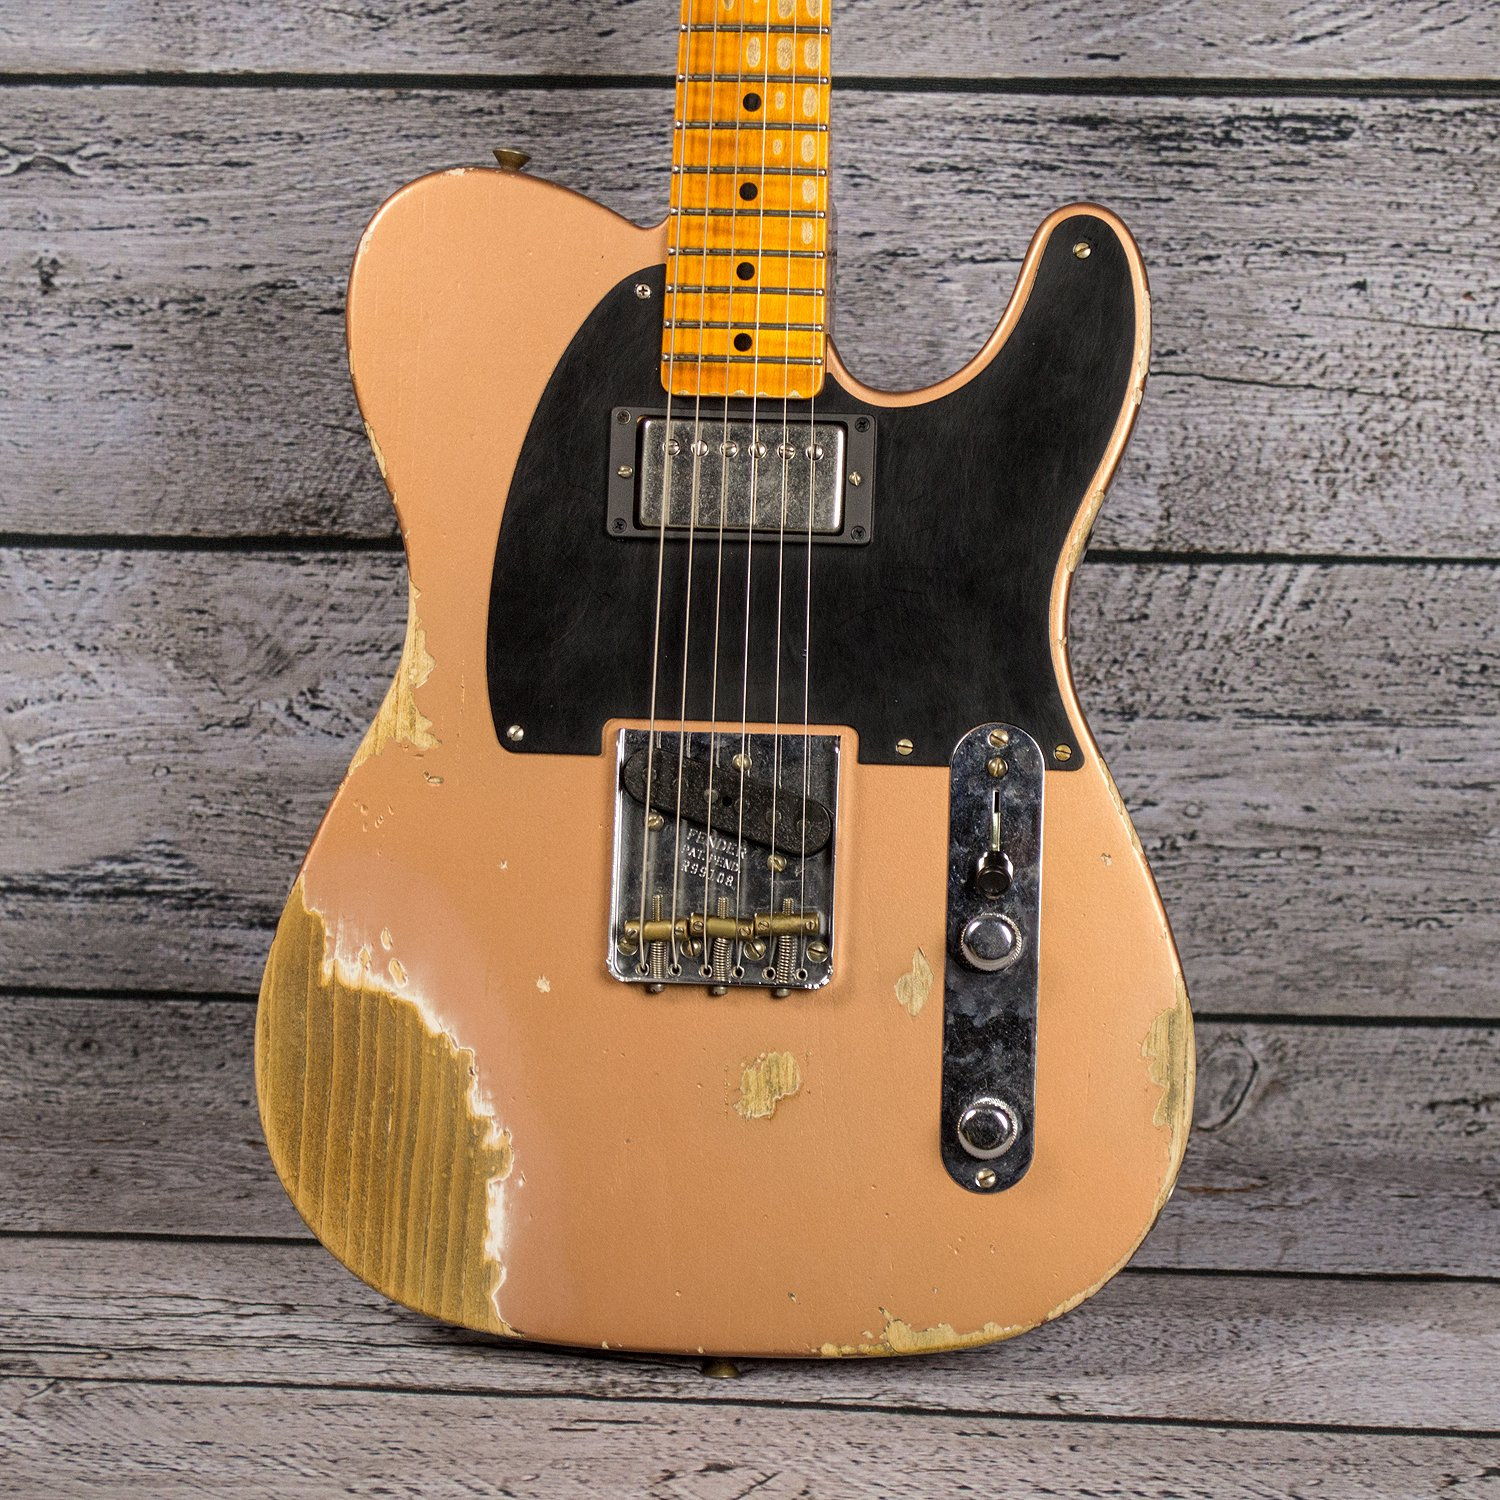 Fender Custom Shop Limited Edition 1951 Telecaster HS Relic - Aged Copper